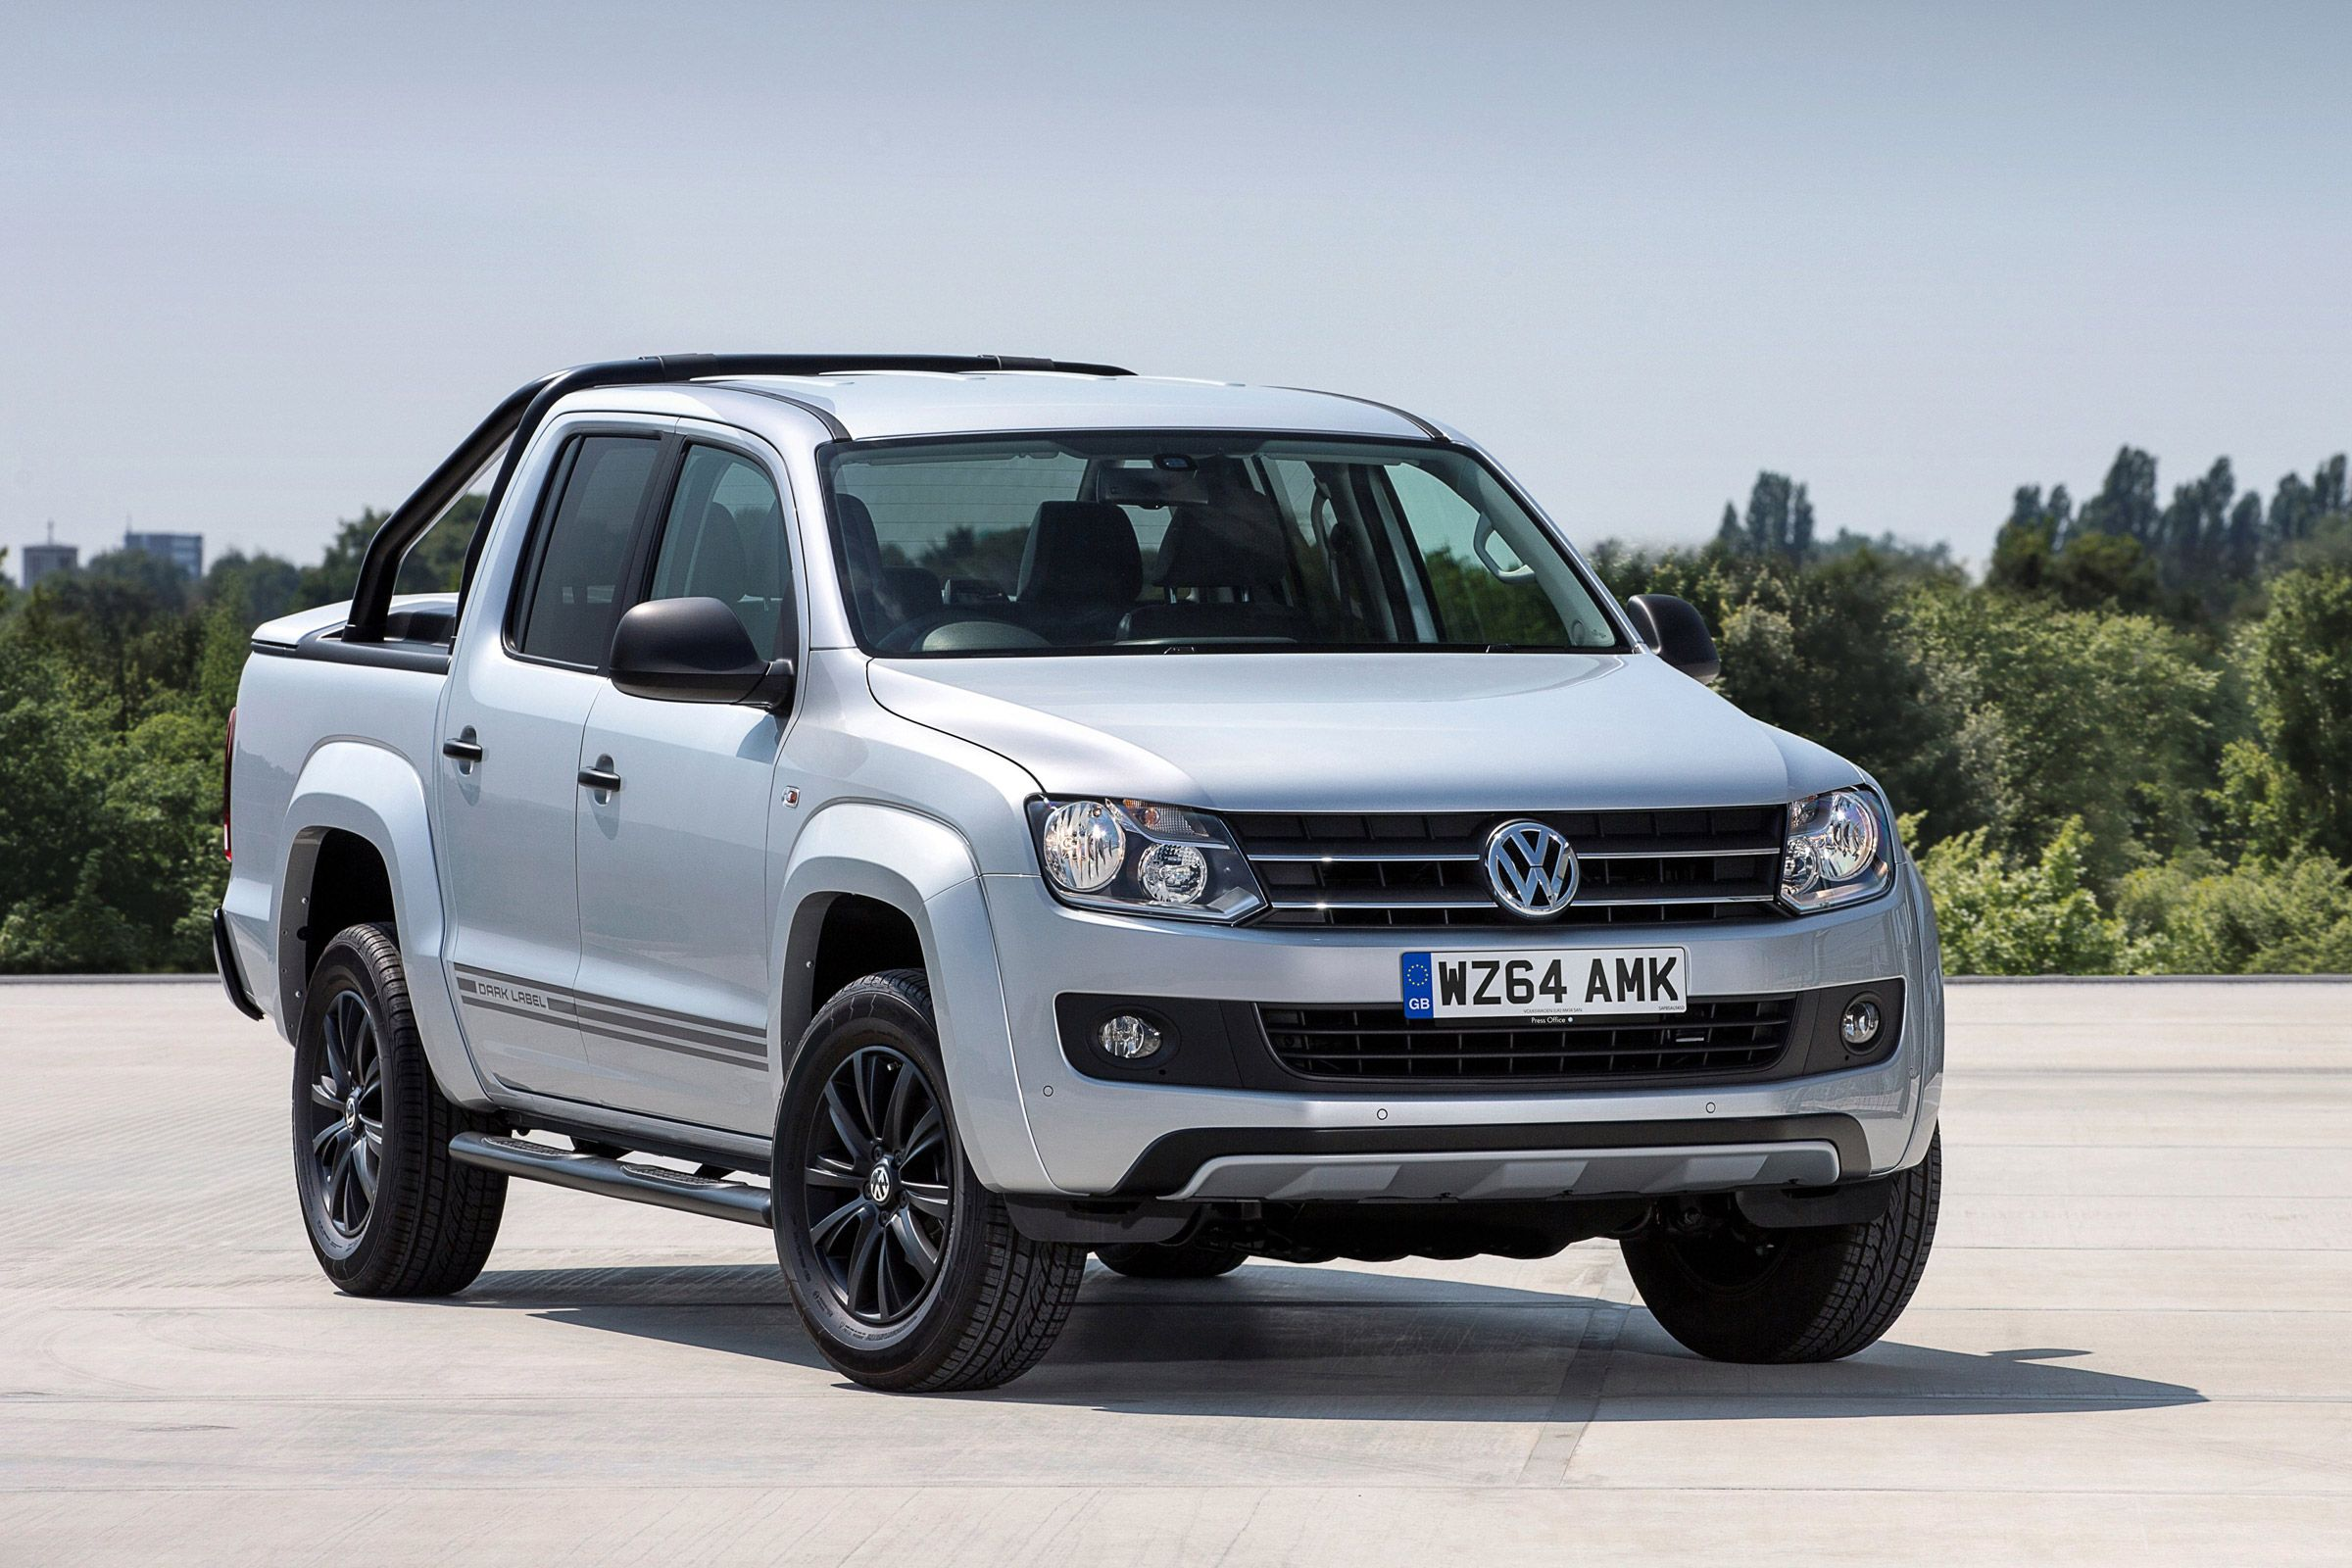 2017 volkswagen amarok enquire now www shop click drive com au volkswagen pinterest volkswagen vw amarok and cars